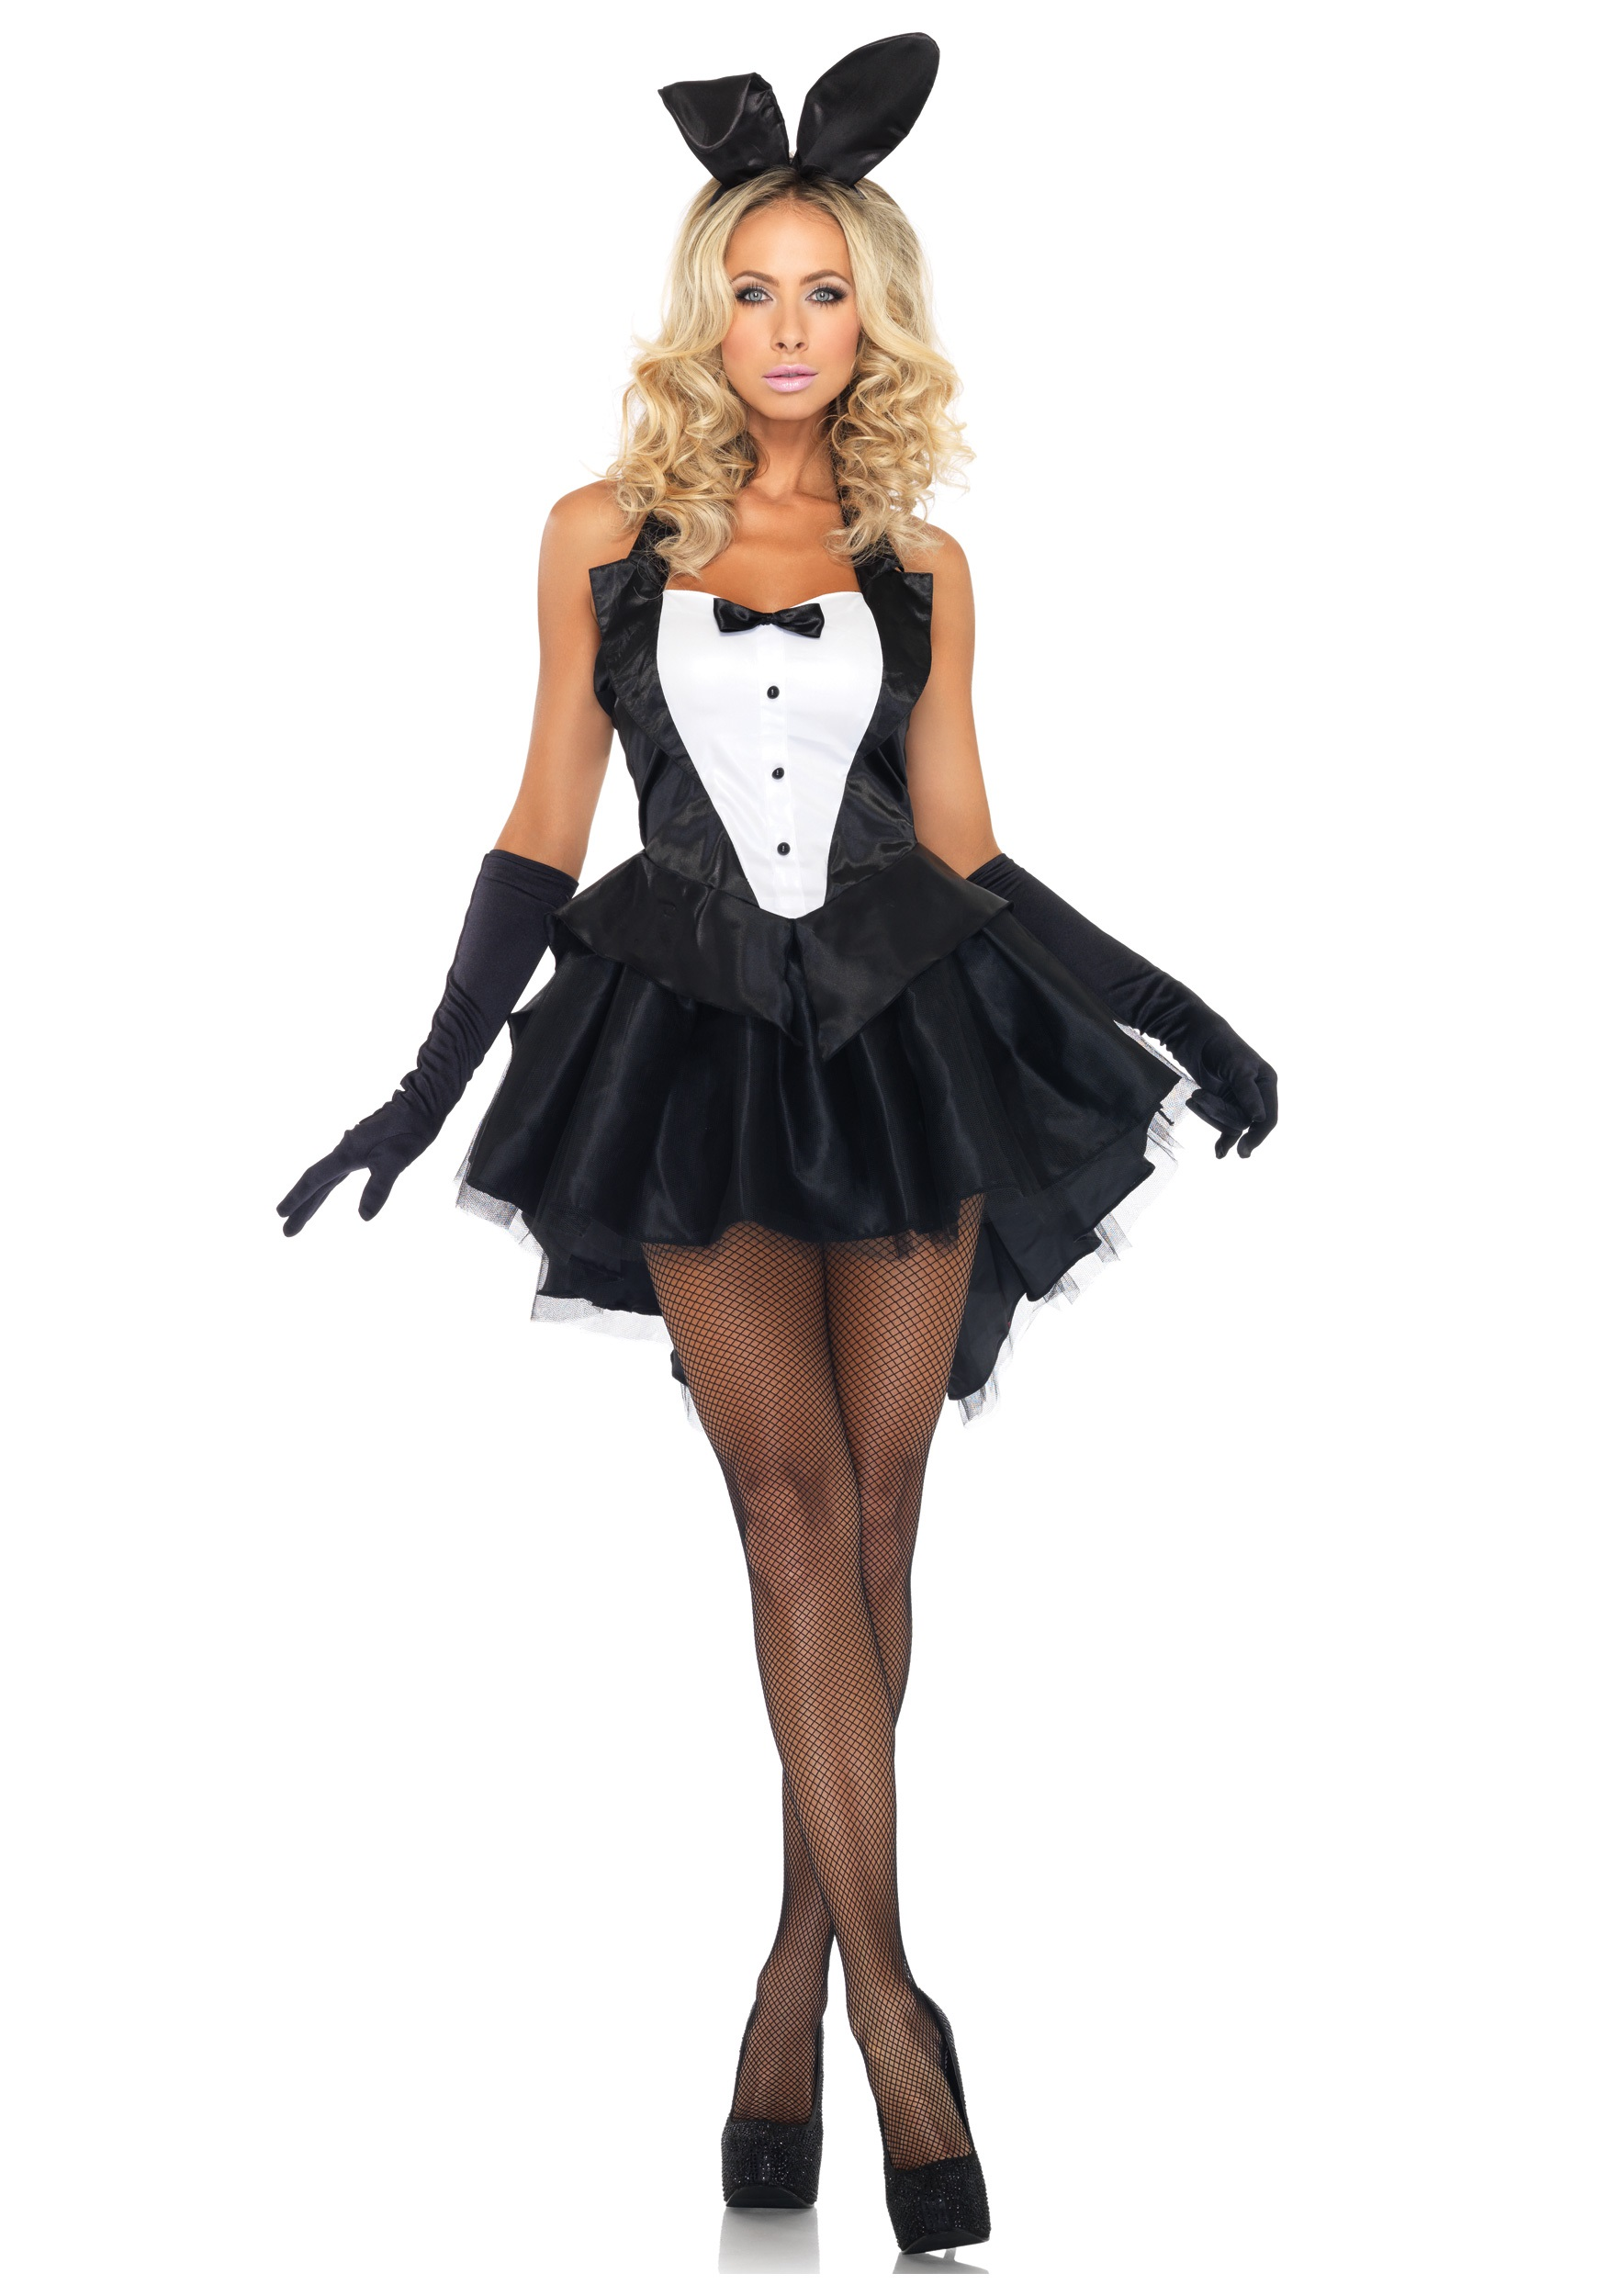 Tux and Tails Bunny Costume  sc 1 st  Halloween Costumes & Tux and Tails Bunny Costume - Halloween Costumes